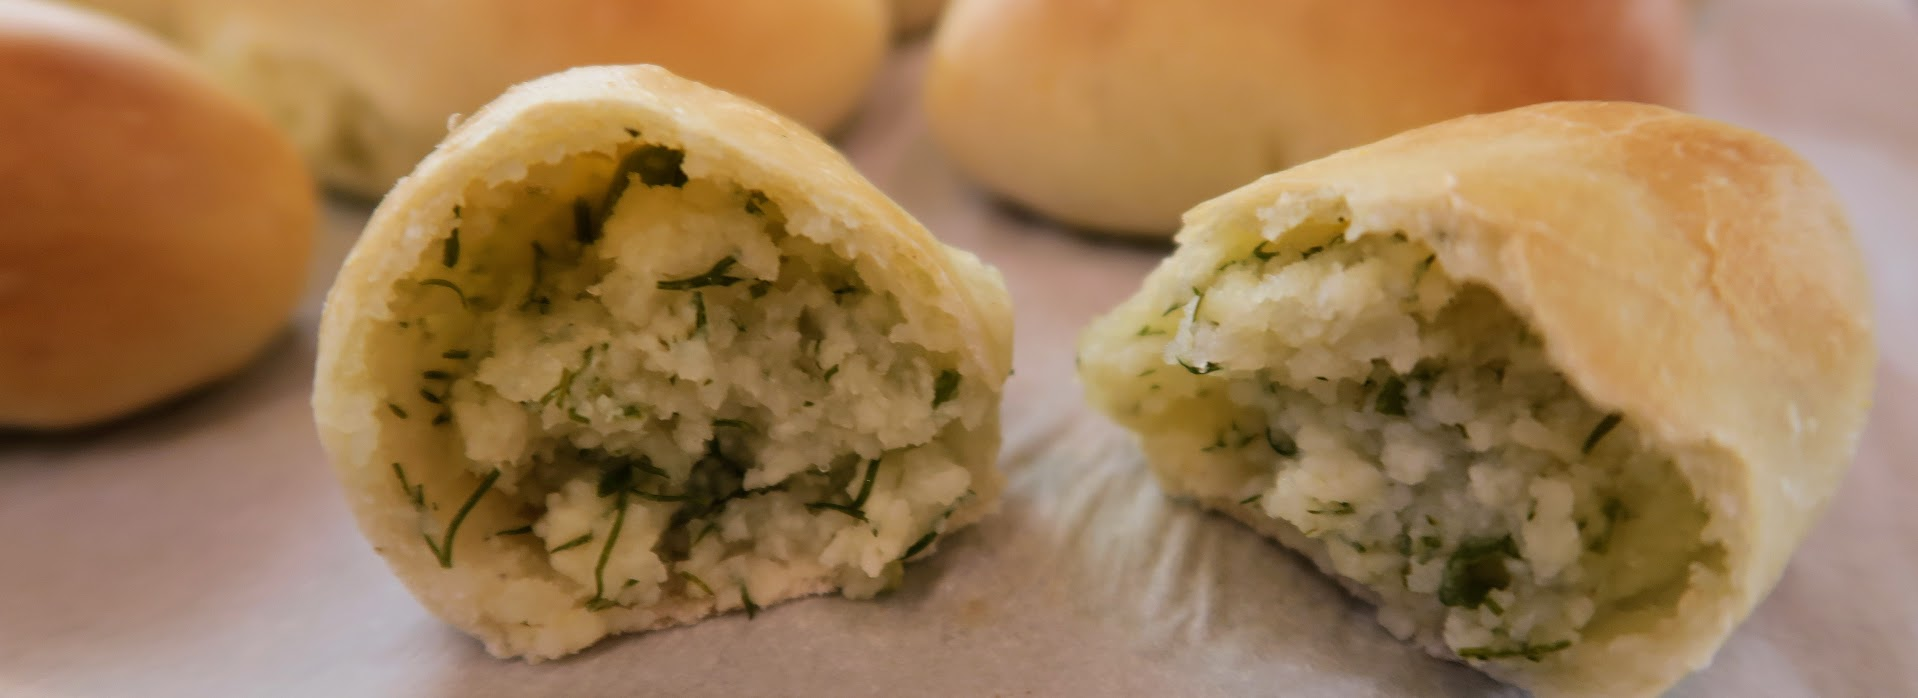 Potato, cheese and dill filling inside a Pyrizhke